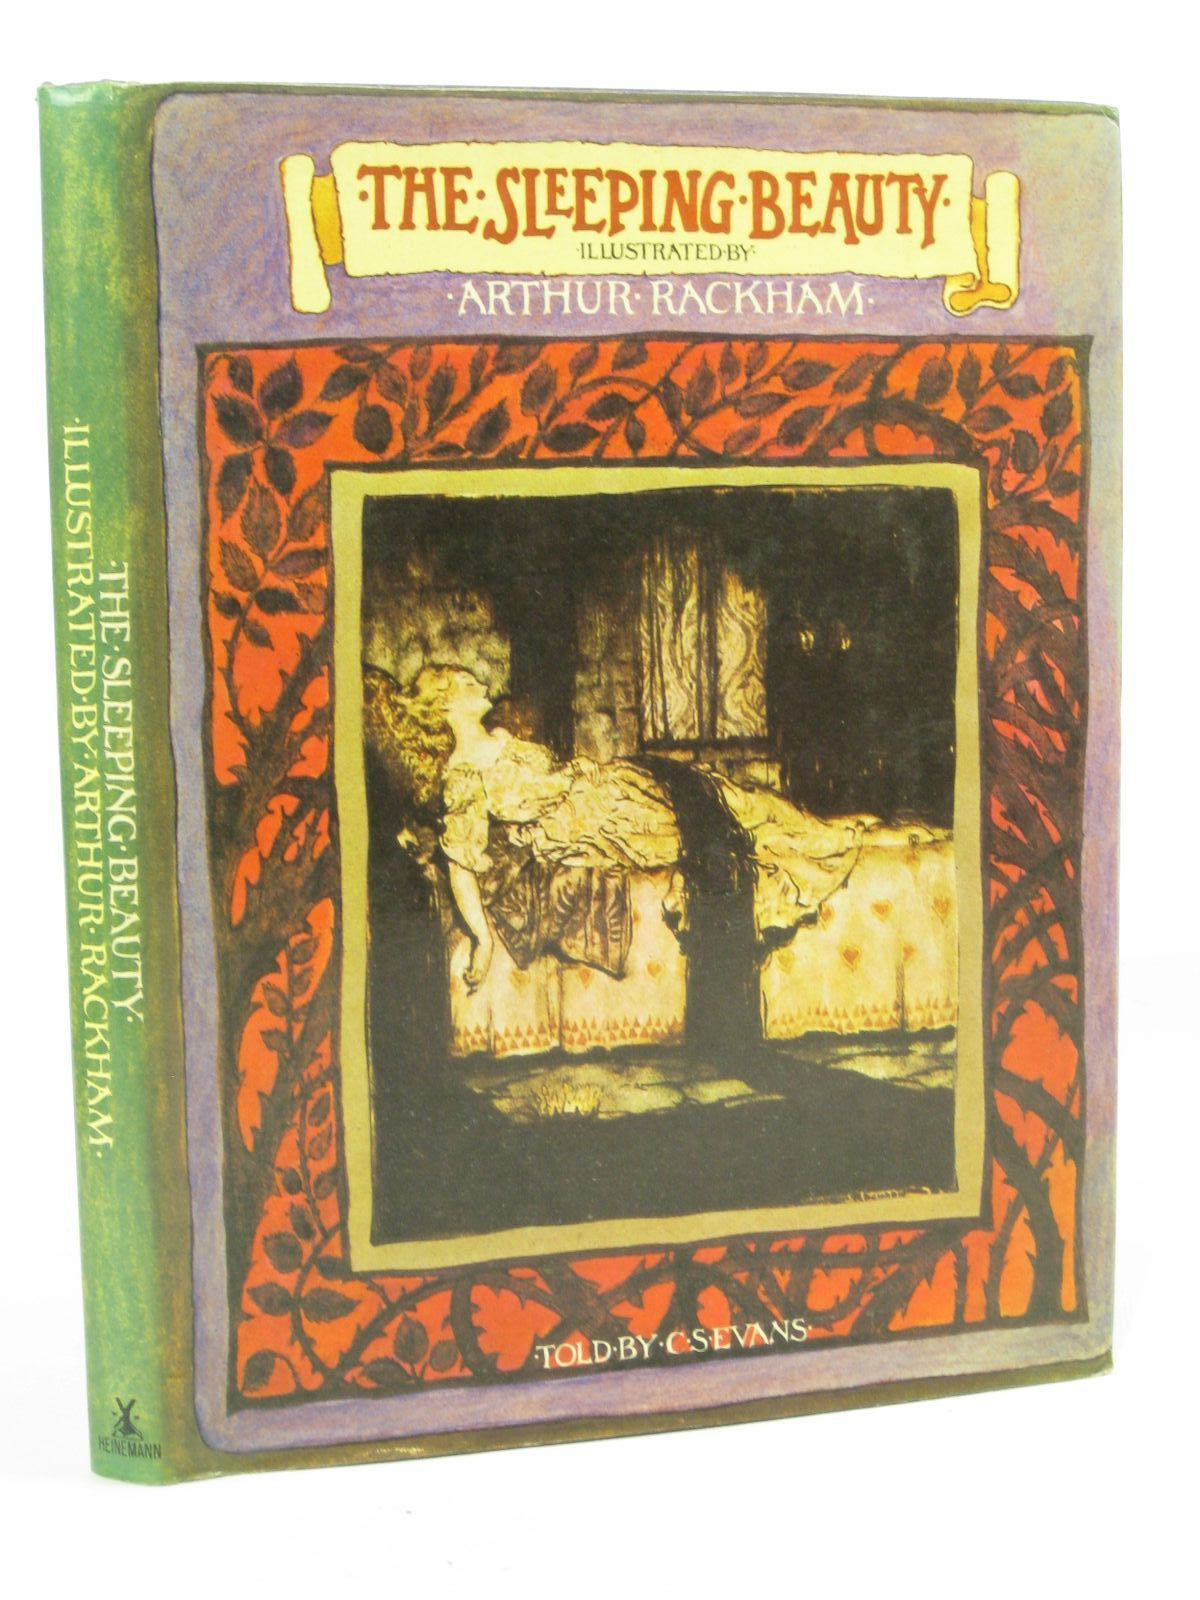 Photo of THE SLEEPING BEAUTY written by Evans, C.S. illustrated by Rackham, Arthur published by William Heinemann (STOCK CODE: 1407064)  for sale by Stella & Rose's Books